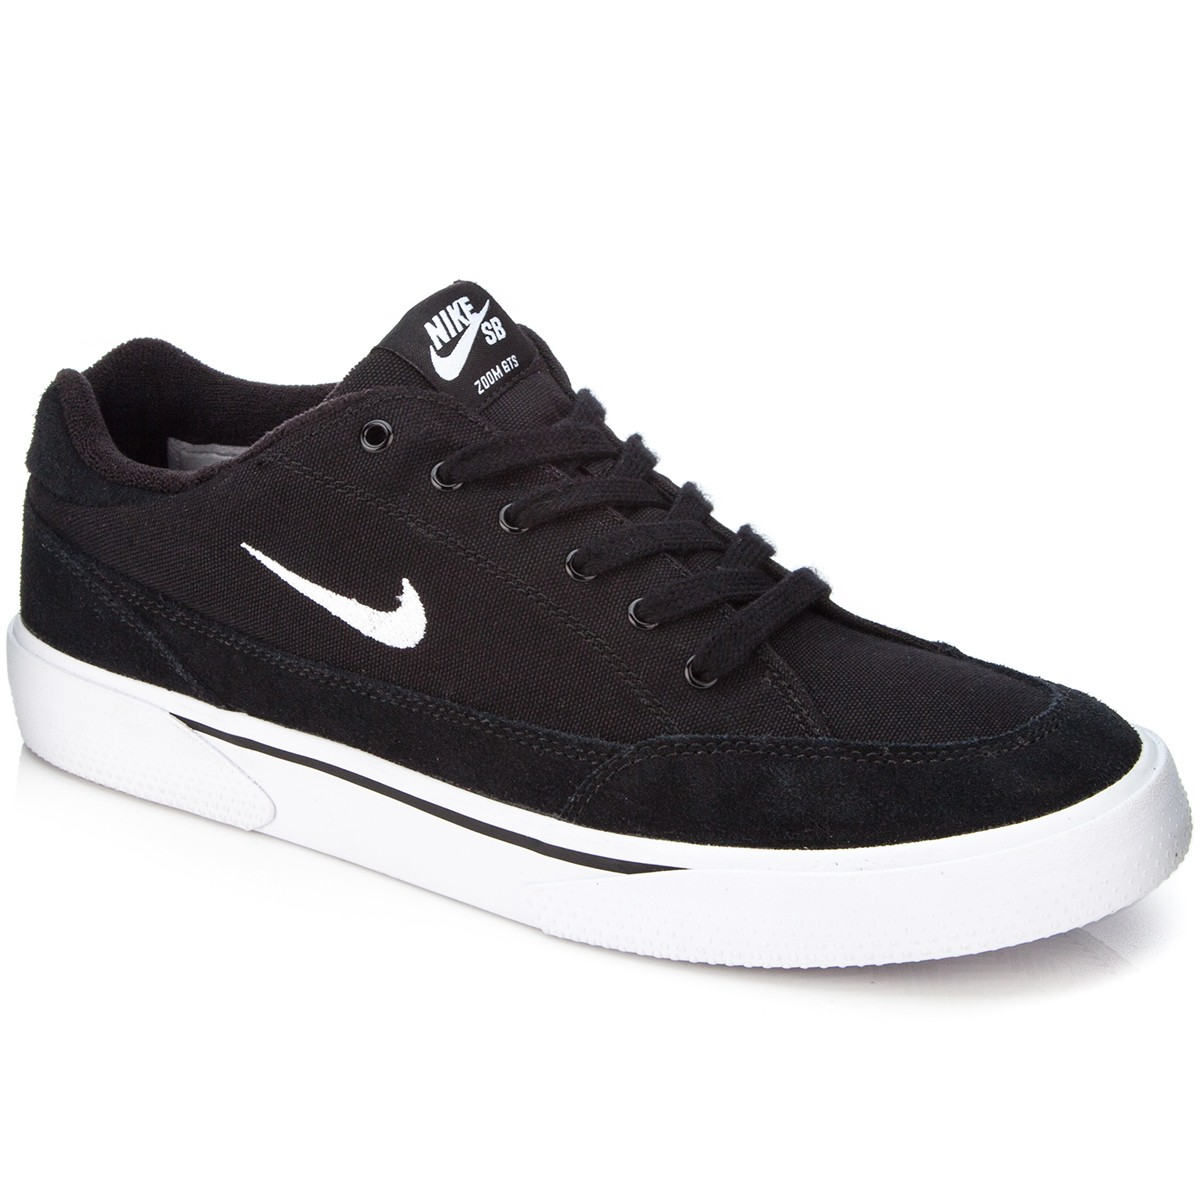 buy popular d8ce0 5a0d3 Nike SB Zoom GTS Shoes - Black White - 7.0